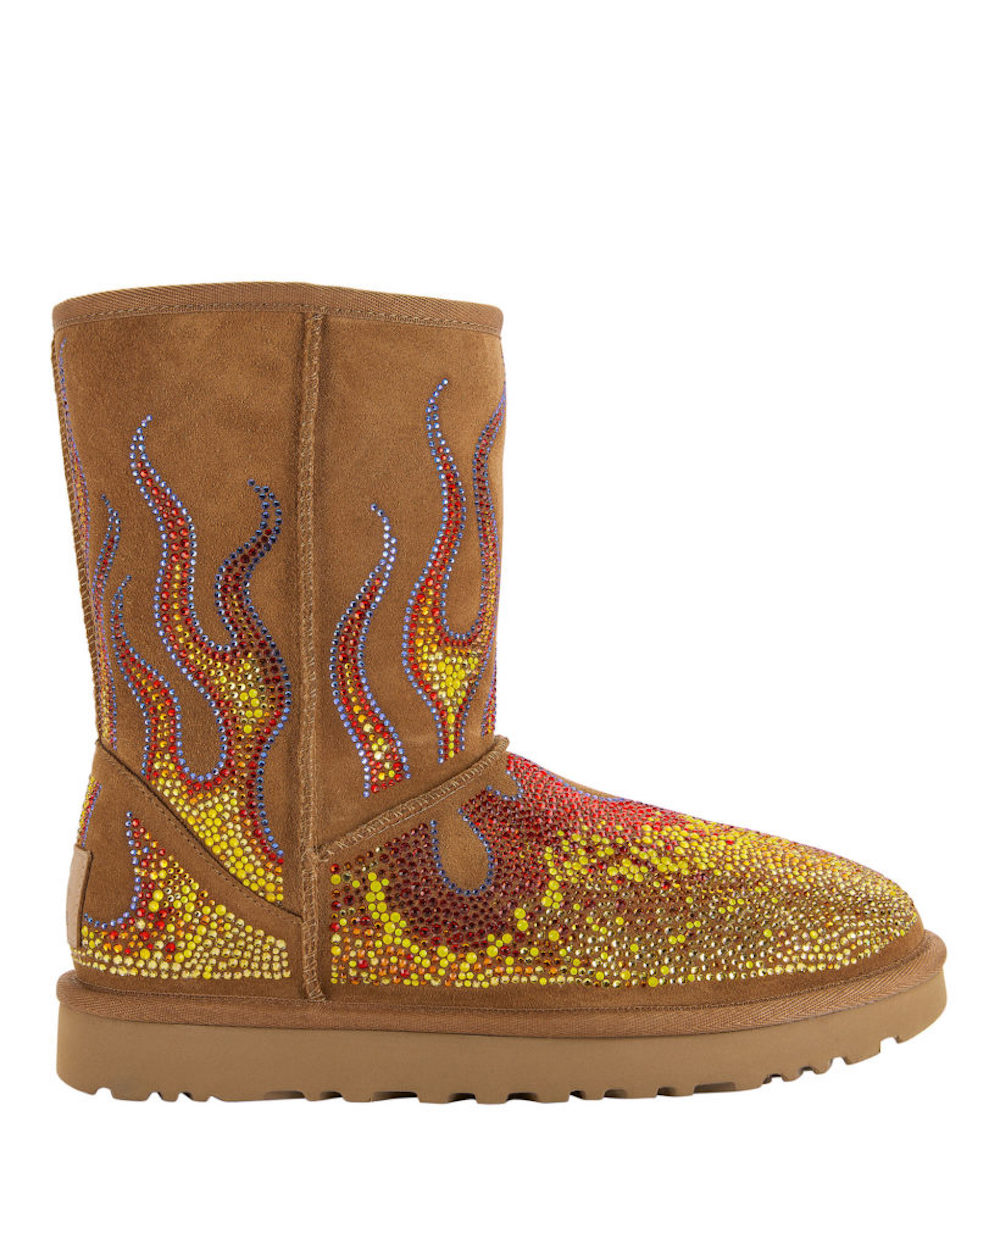 c34b30a1d649 The Ugg x Jeremy Scott shoe capsule collection was made for Guy ...